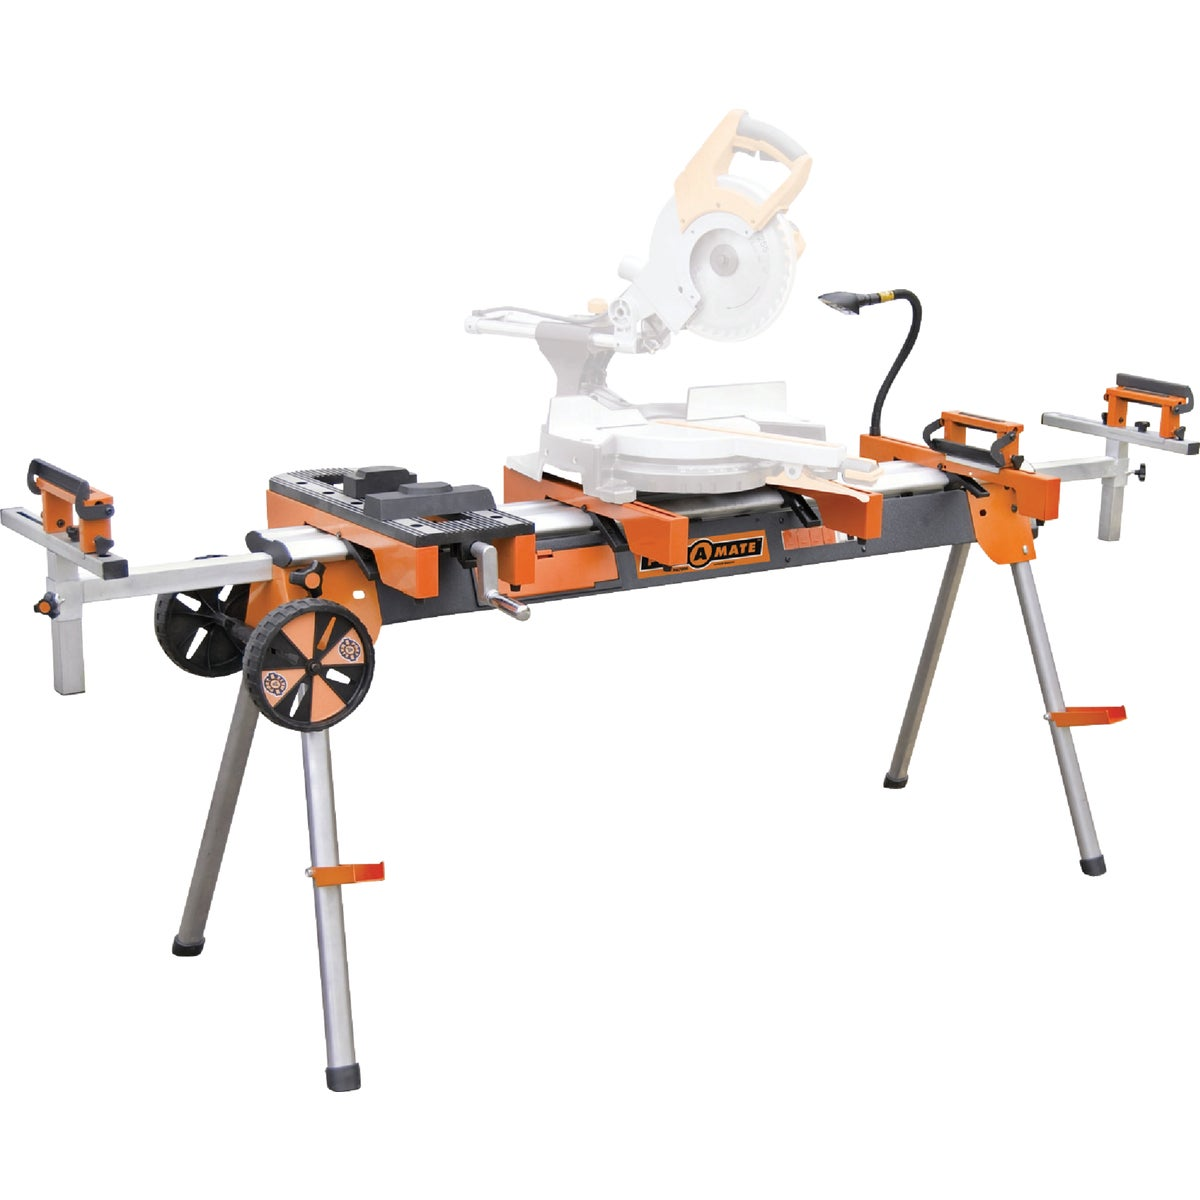 MITRE SAW WORKCENTER - PM7000 by Affinity Tool Works